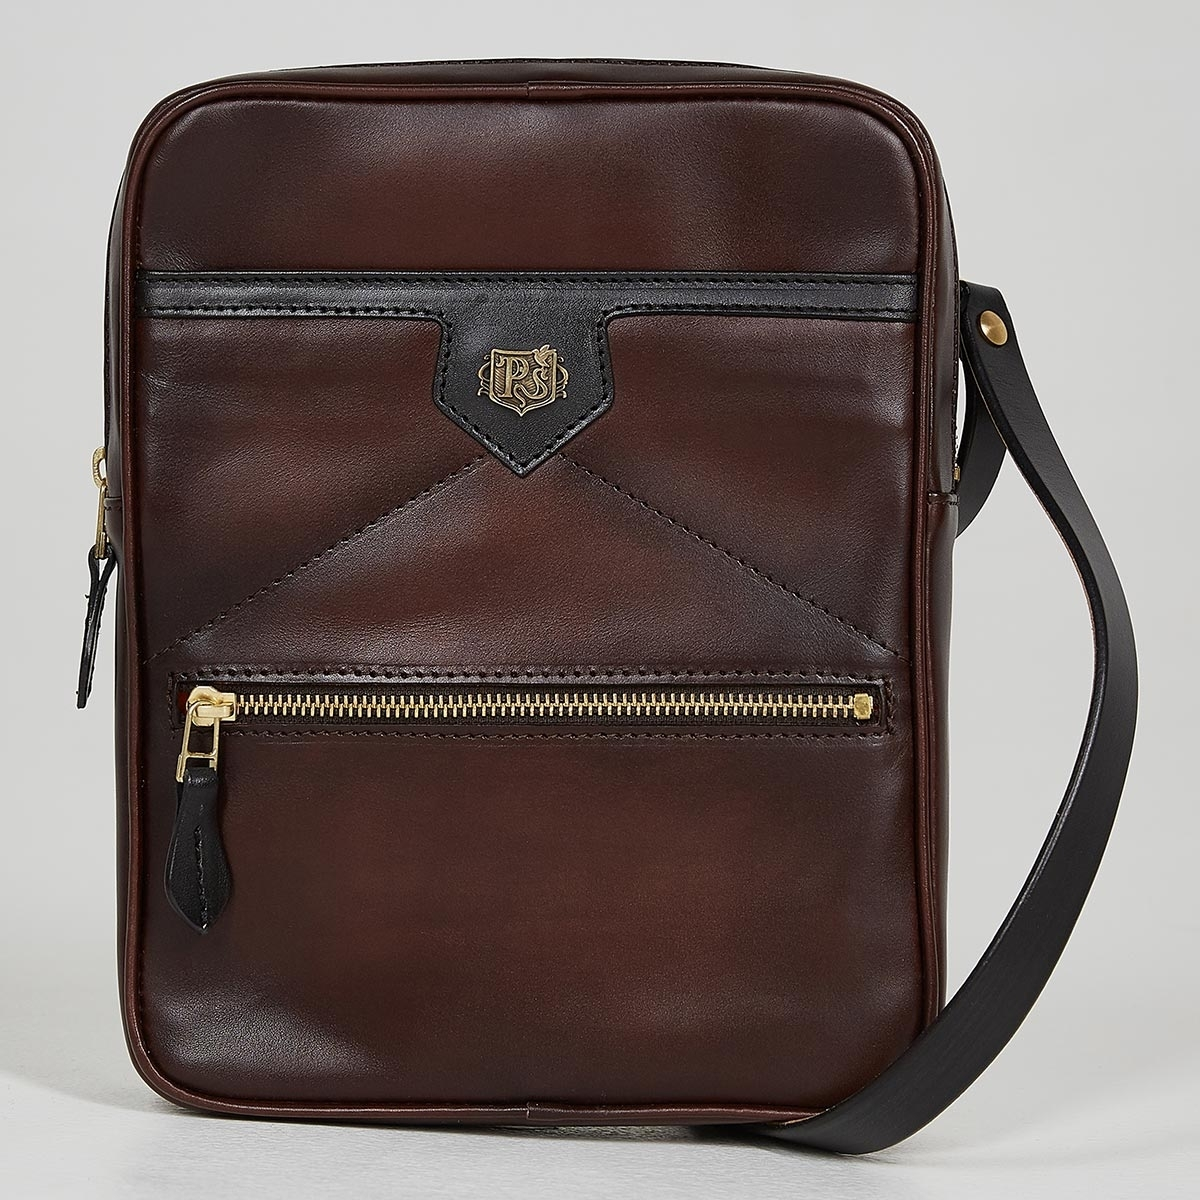 Crossbody bag MEZZO dark agave & dutch cocoa